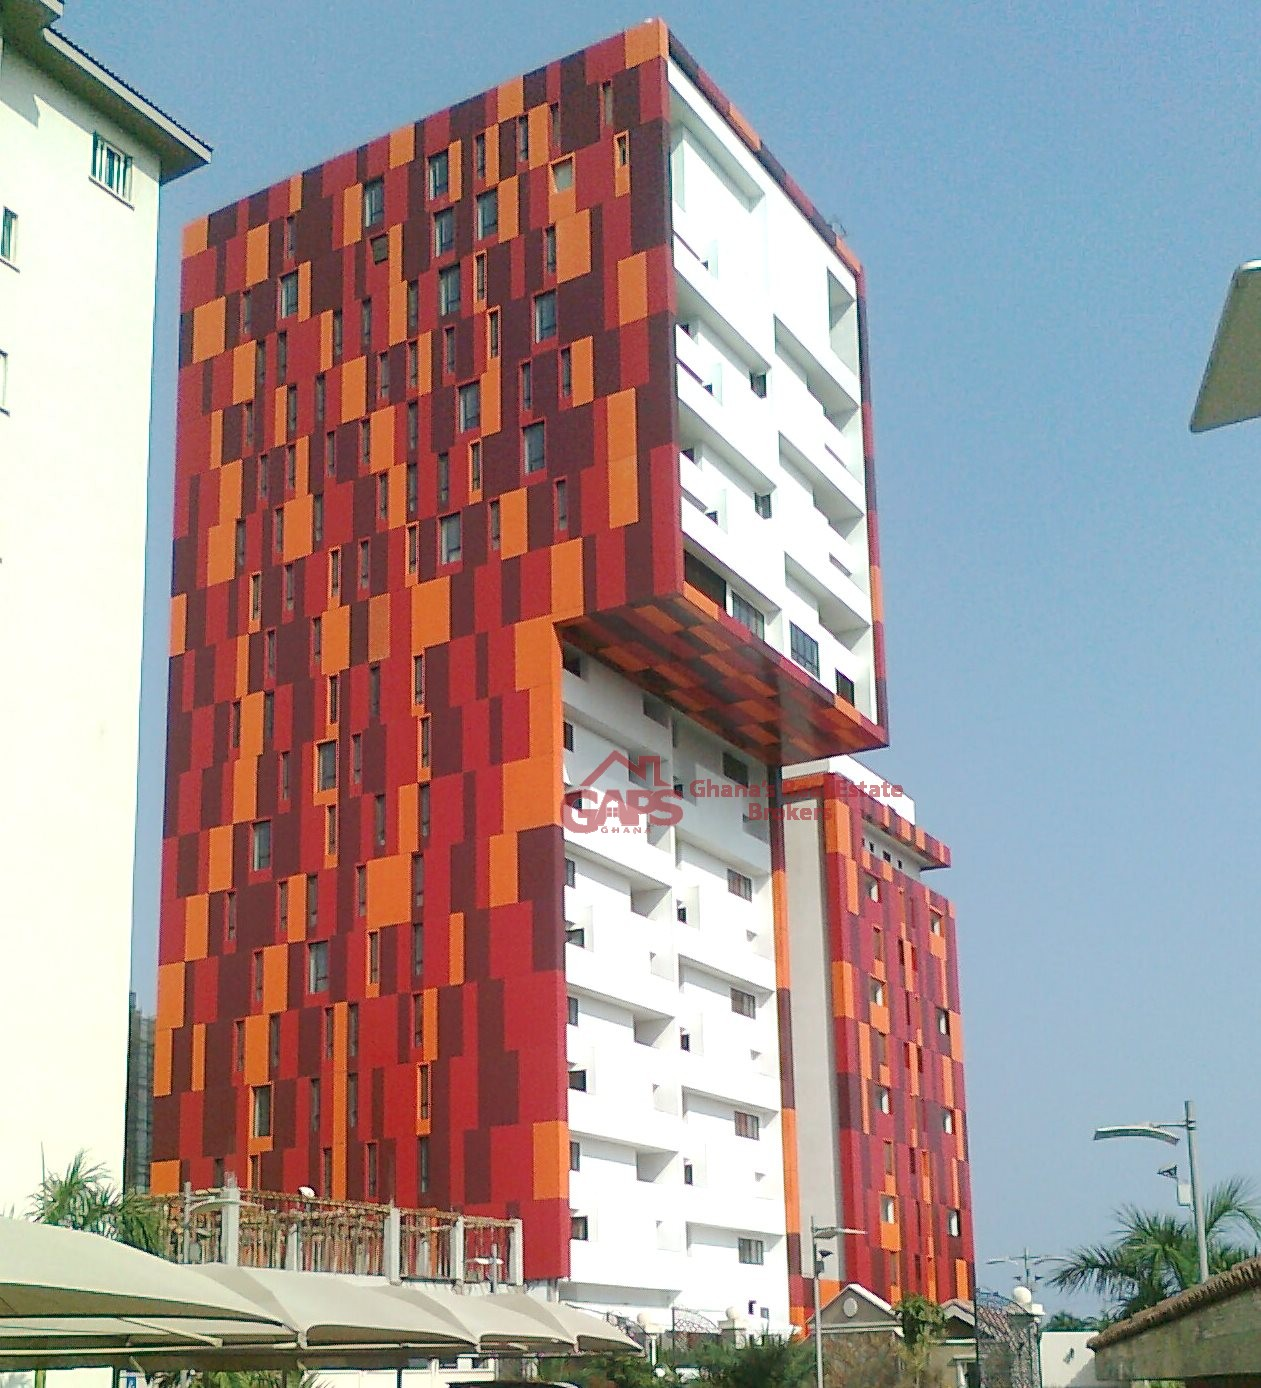 3 BEDROOM APARTMENTS FOR RENT AT AIRPORT WEST